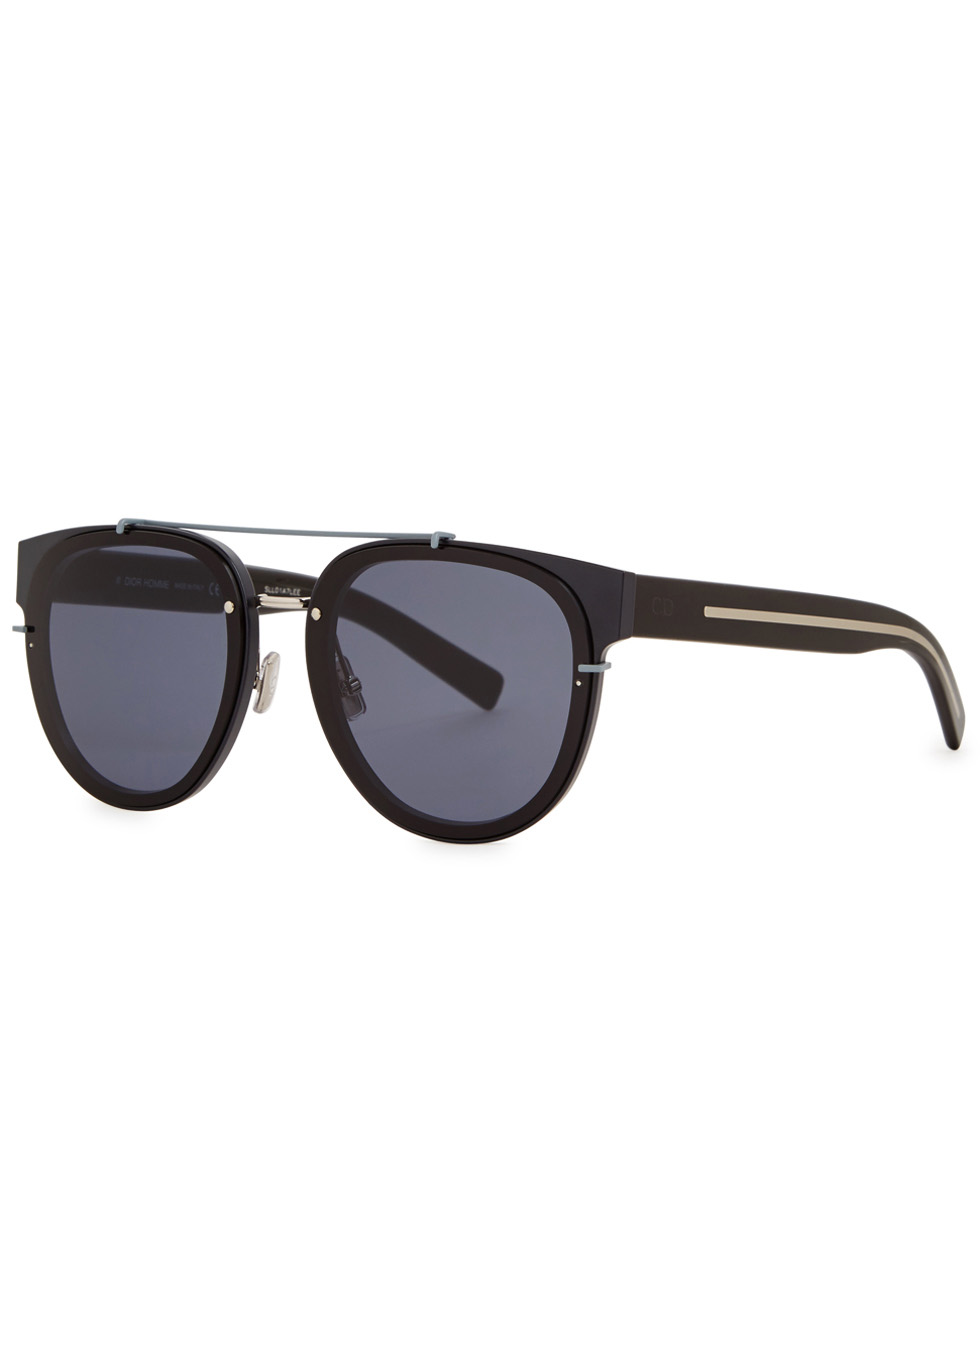 Black Tie 143S black aviator-style sunglasses - Dior Homme